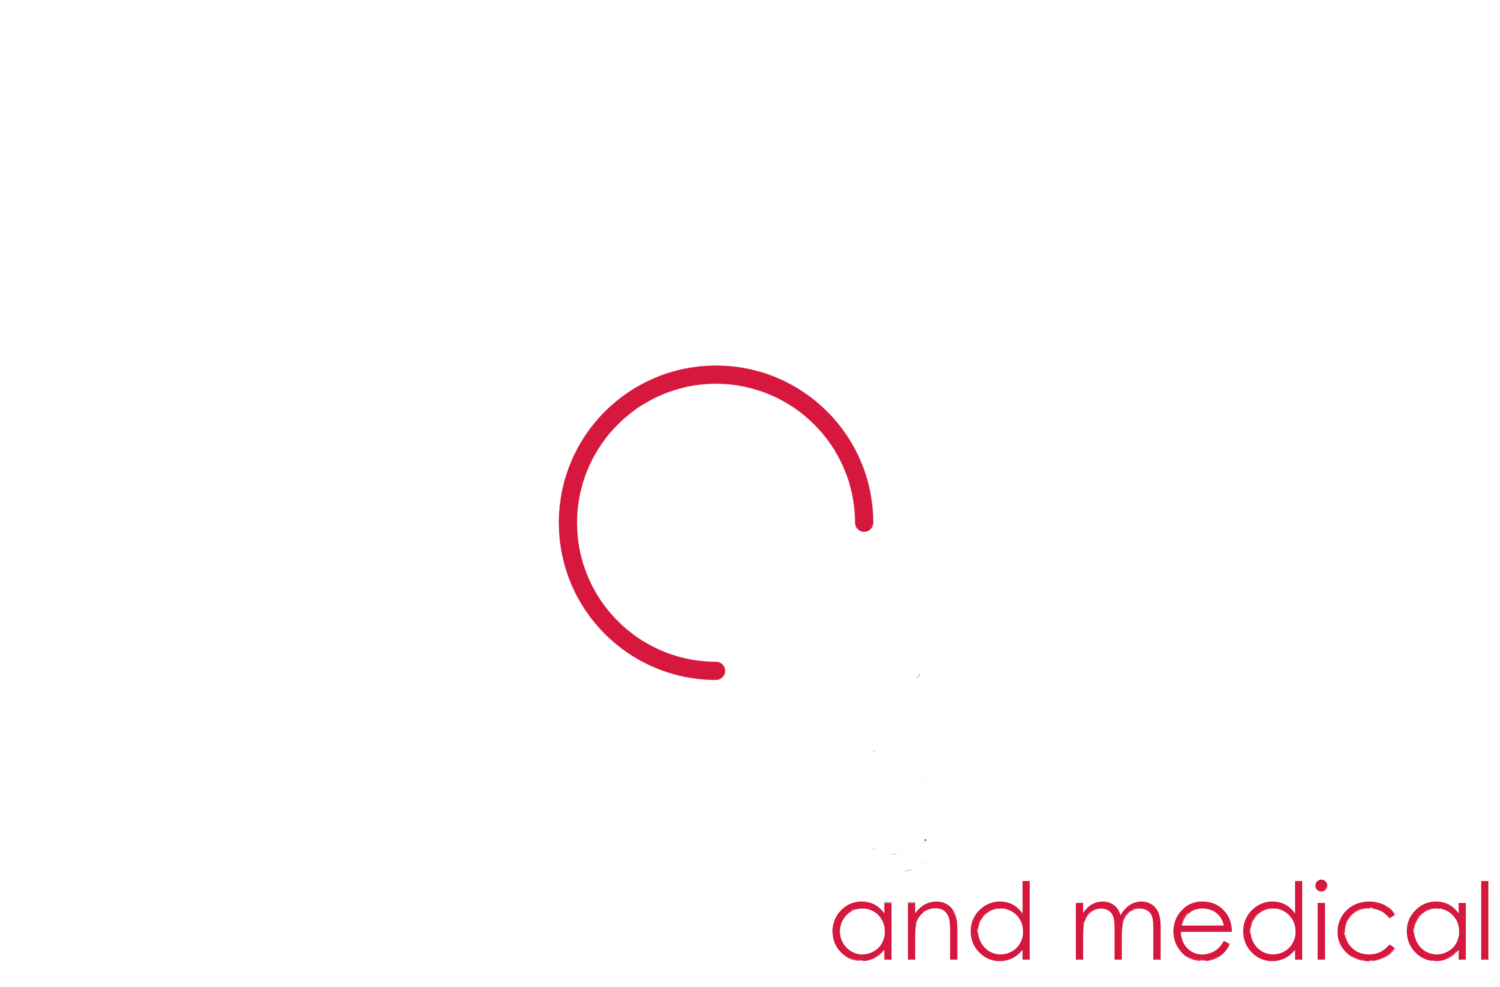 Custom Dental & Medical, Furniture & Equipment